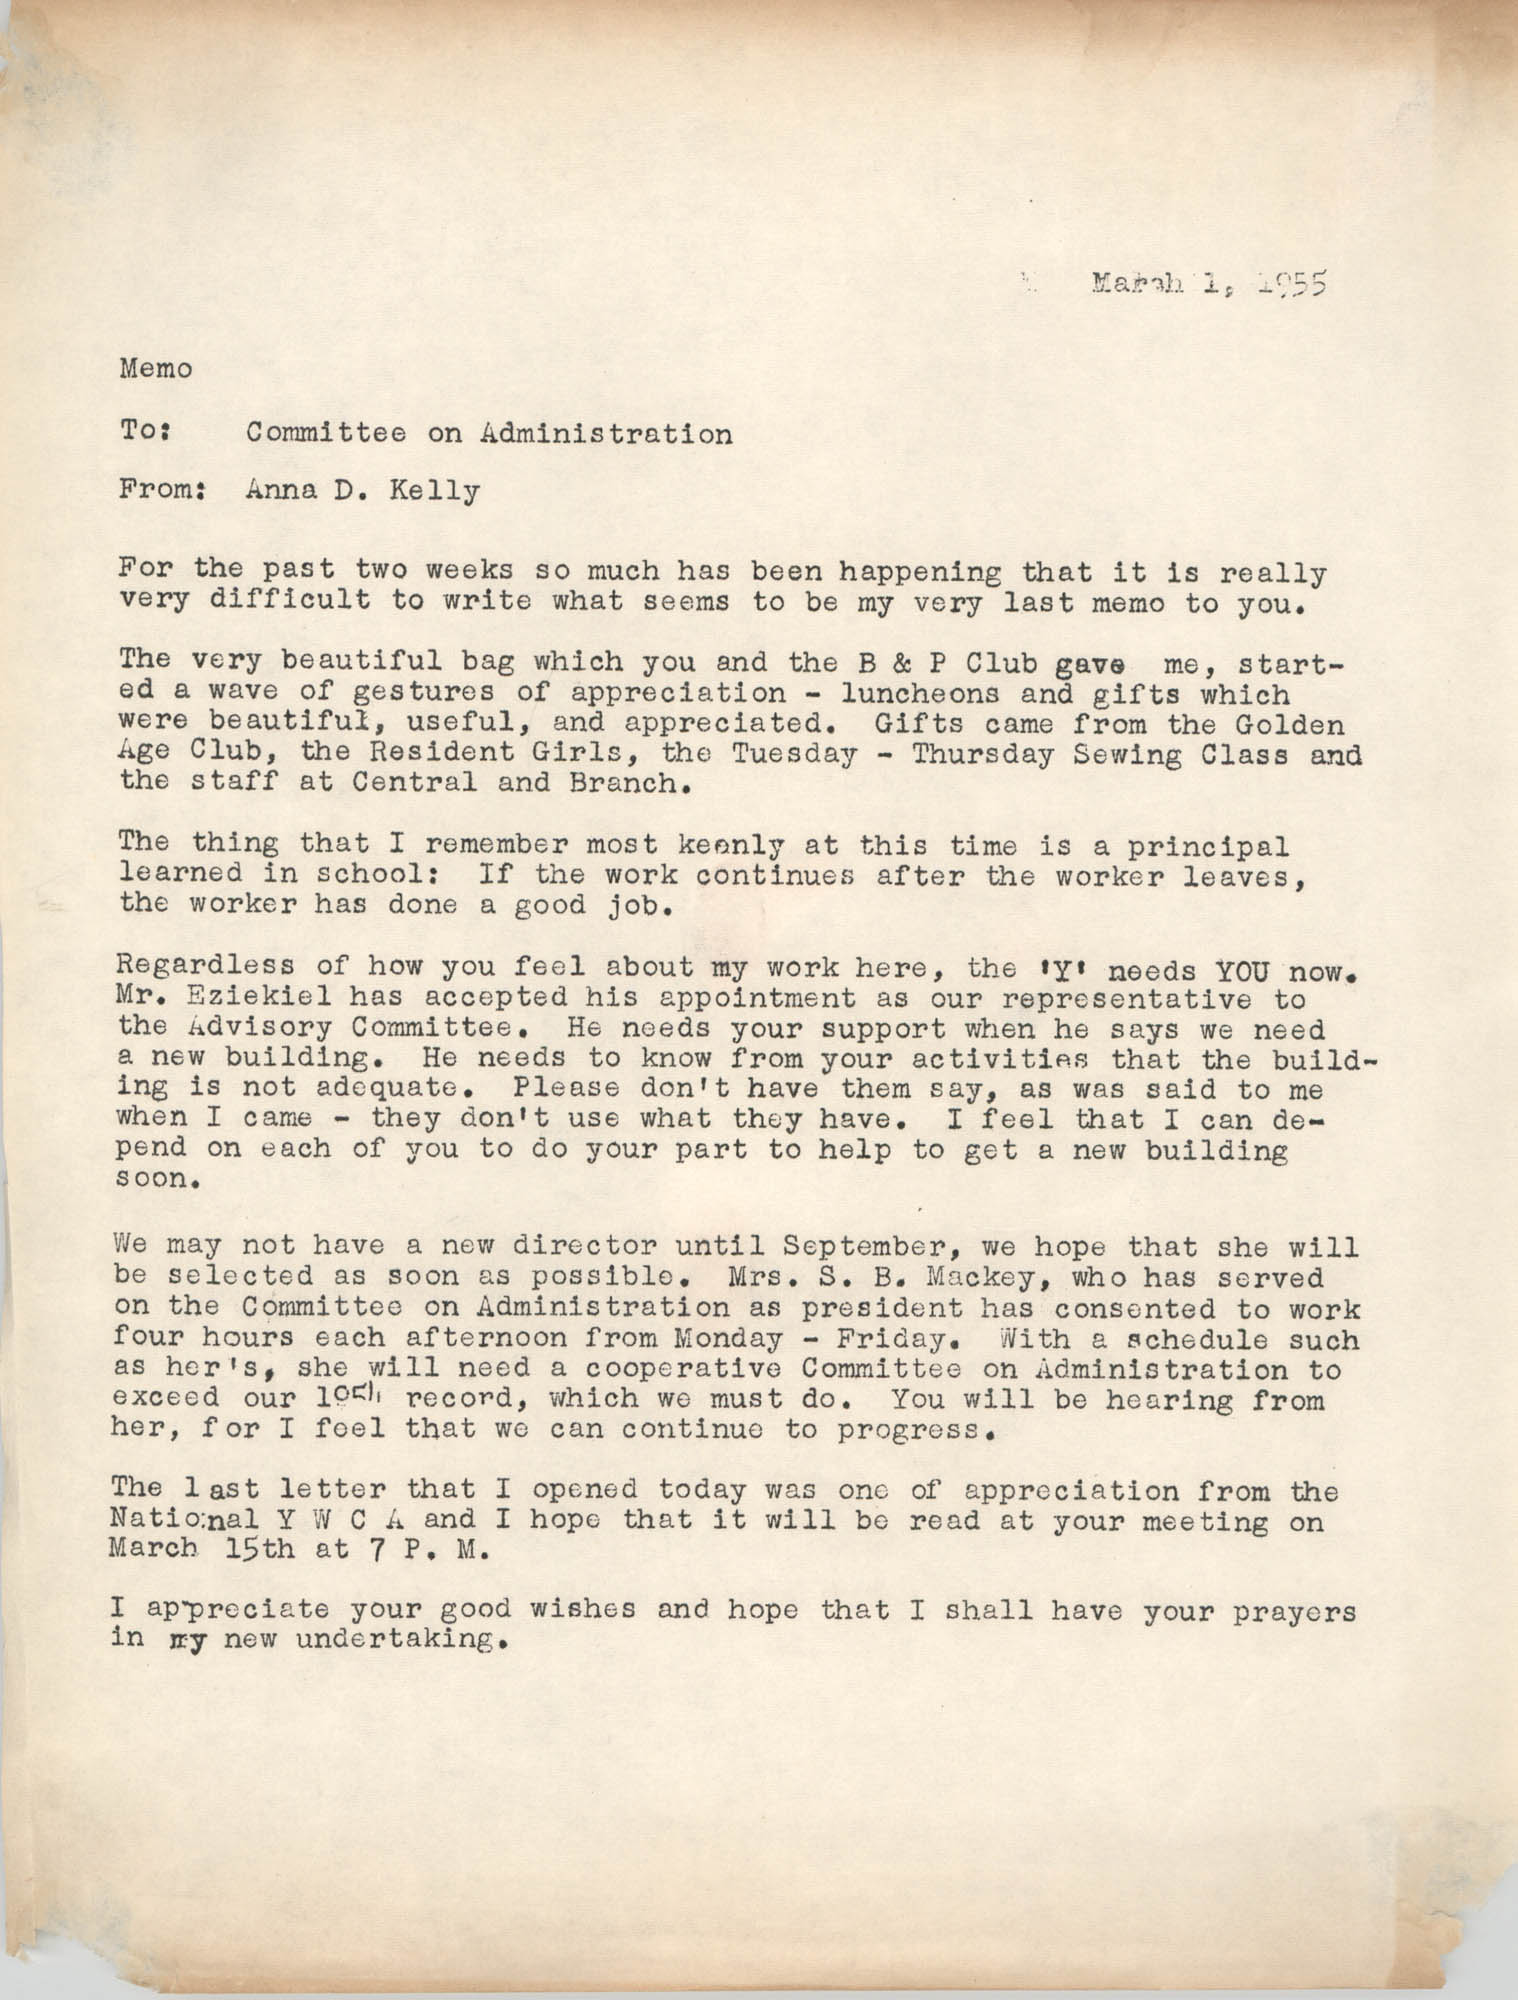 Coming Street Y.W.C.A. Memorandum, March 1, 1955